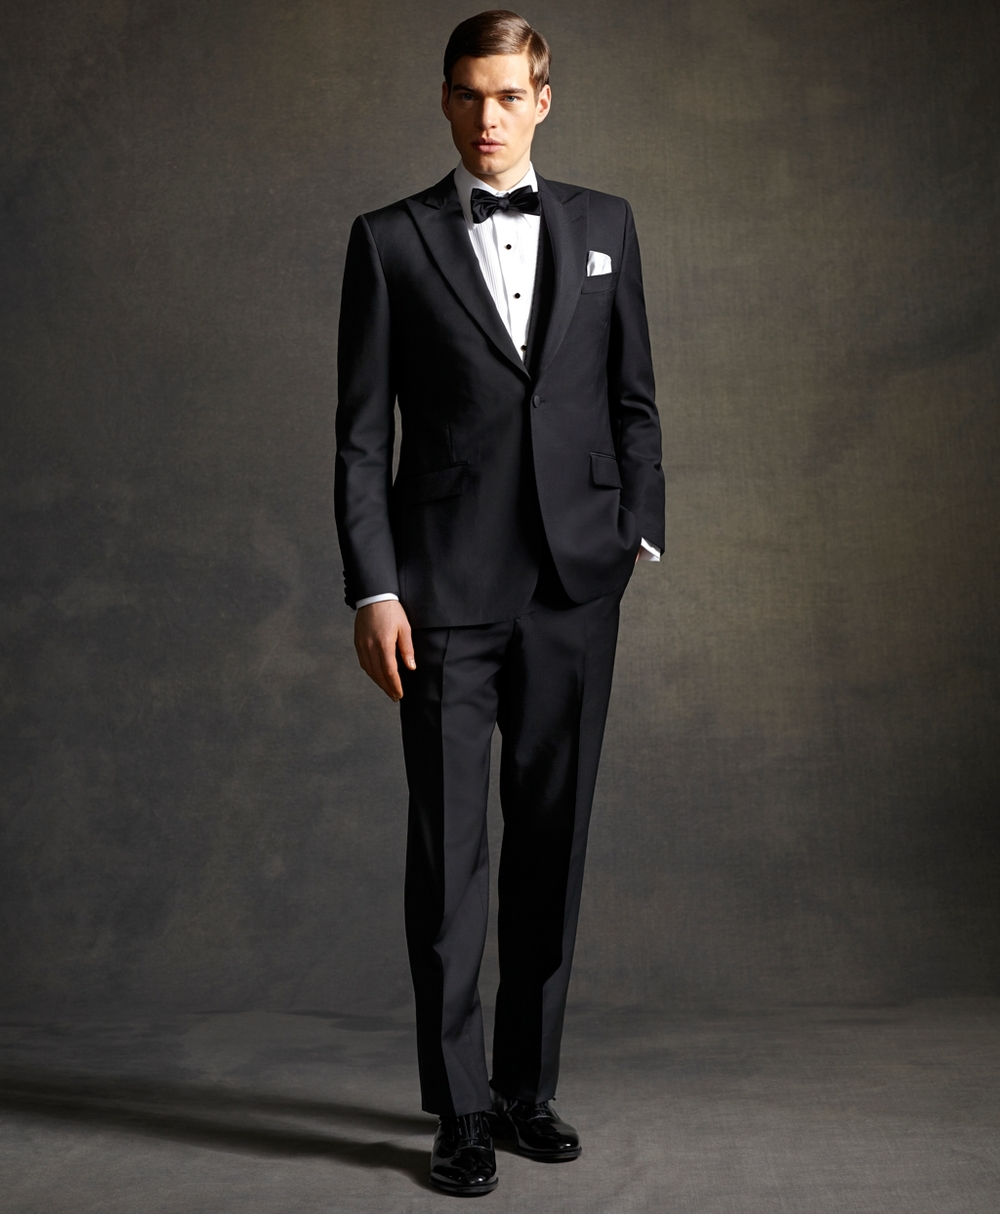 brooks-brothers-great-gatsby-tuxedo.jpg